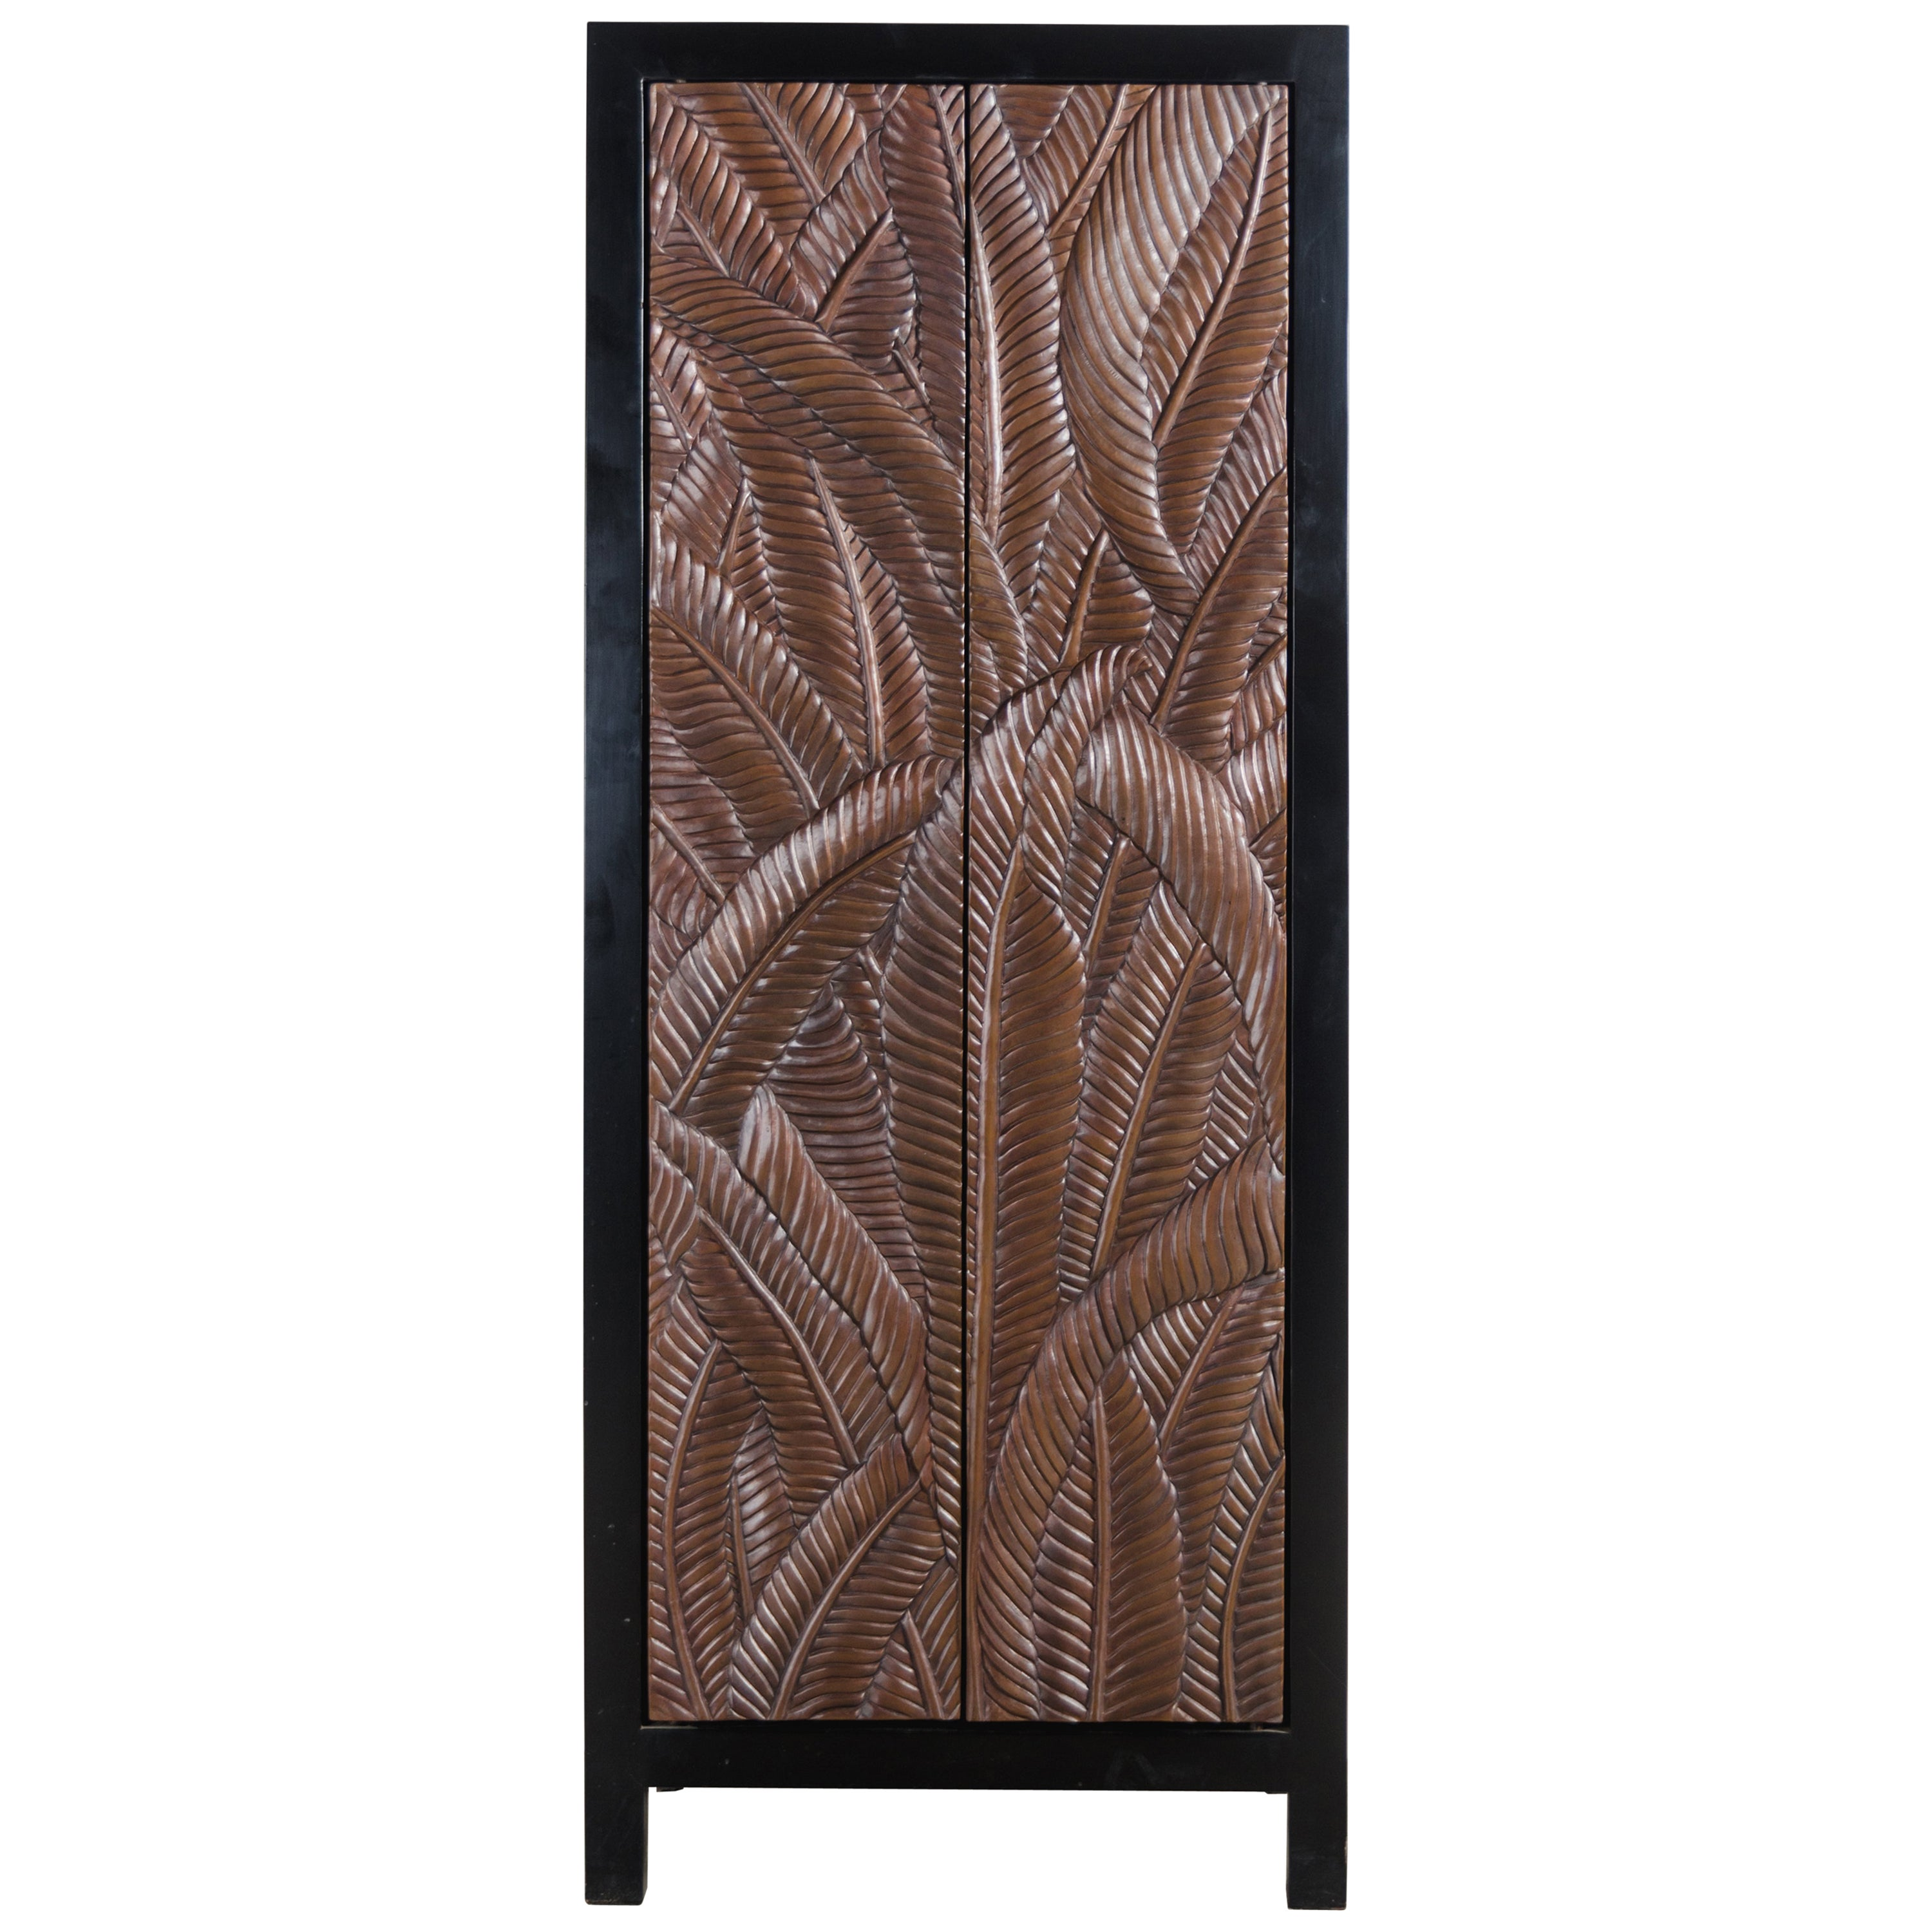 Banana Leaf Design Narrow Cabinet by Robert Kuo, Hand Repousse, Limited Edition